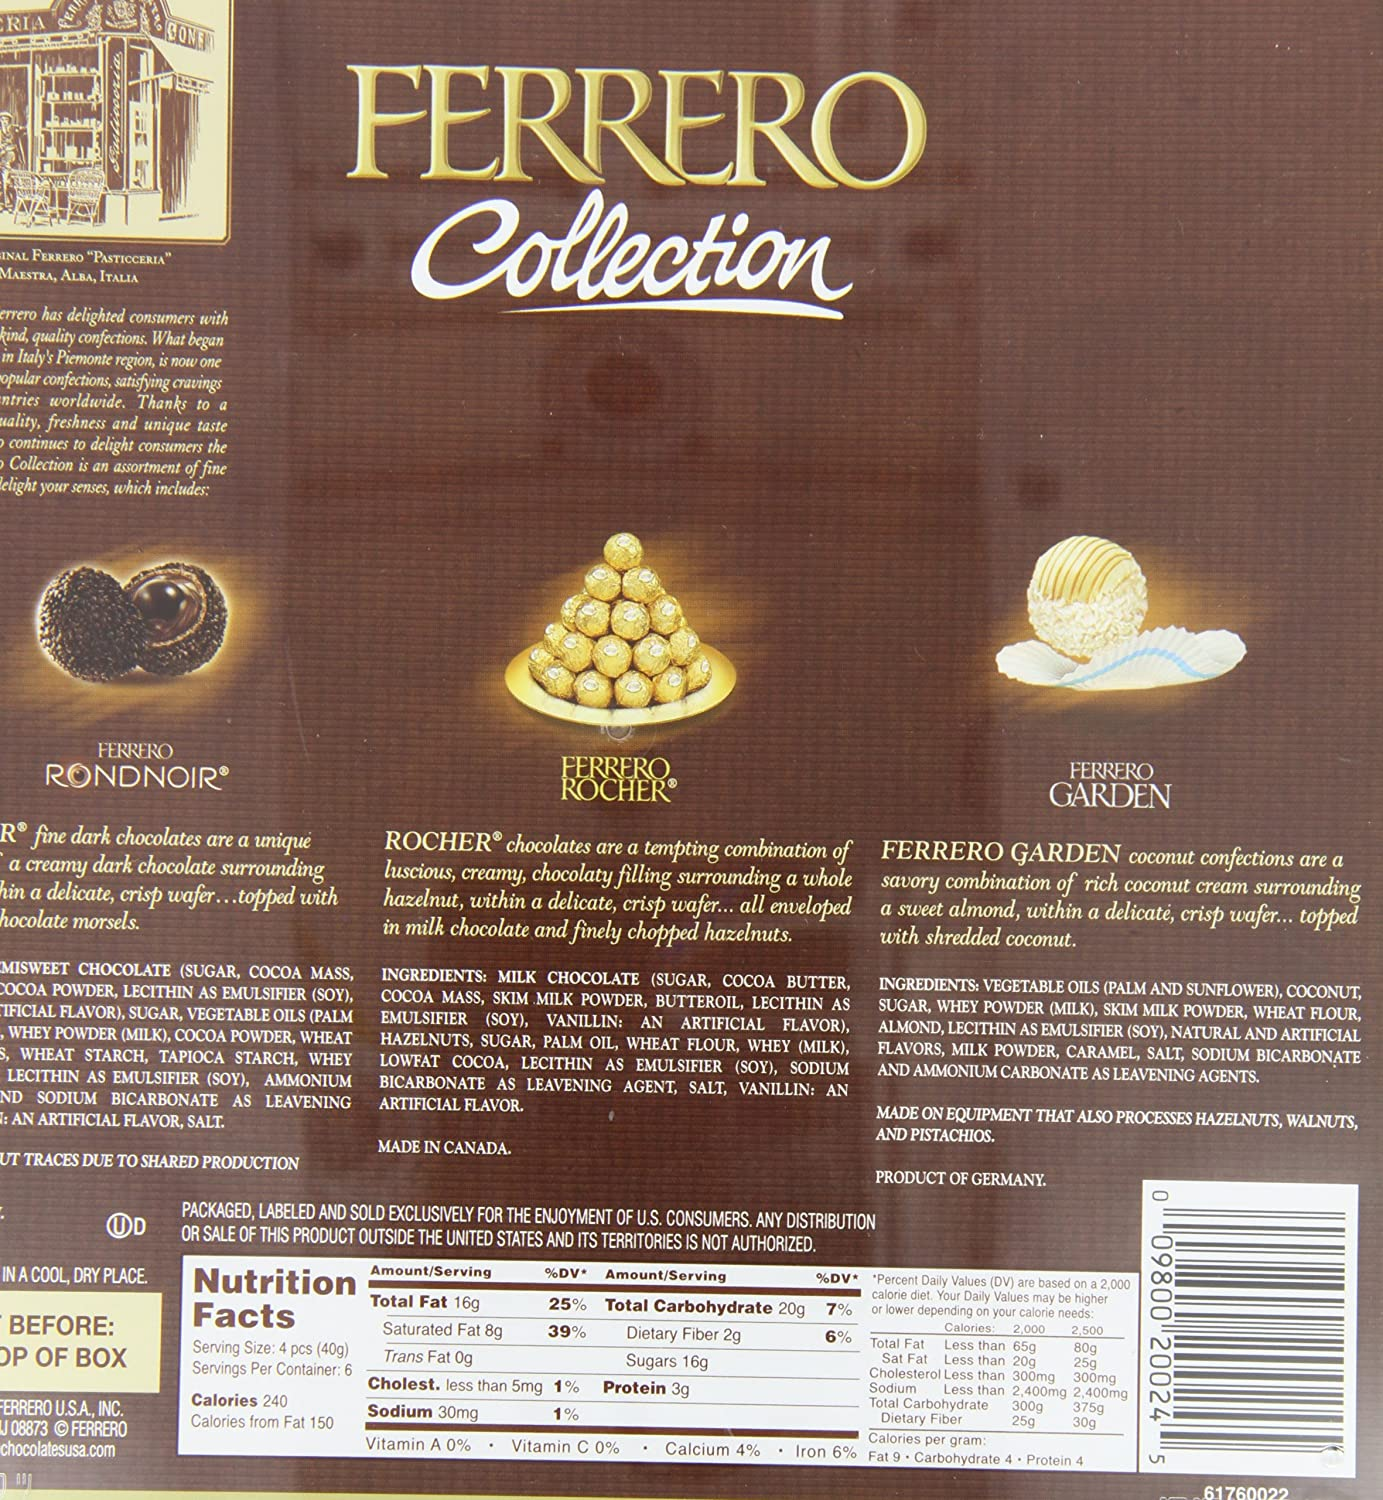 Ferrero Collection 18 Piece Gift Box 24 Count 88 Rocher T24 Coklat 24pcs Ounce 250 Gm Gourmet Candy Gifts Grocery Food